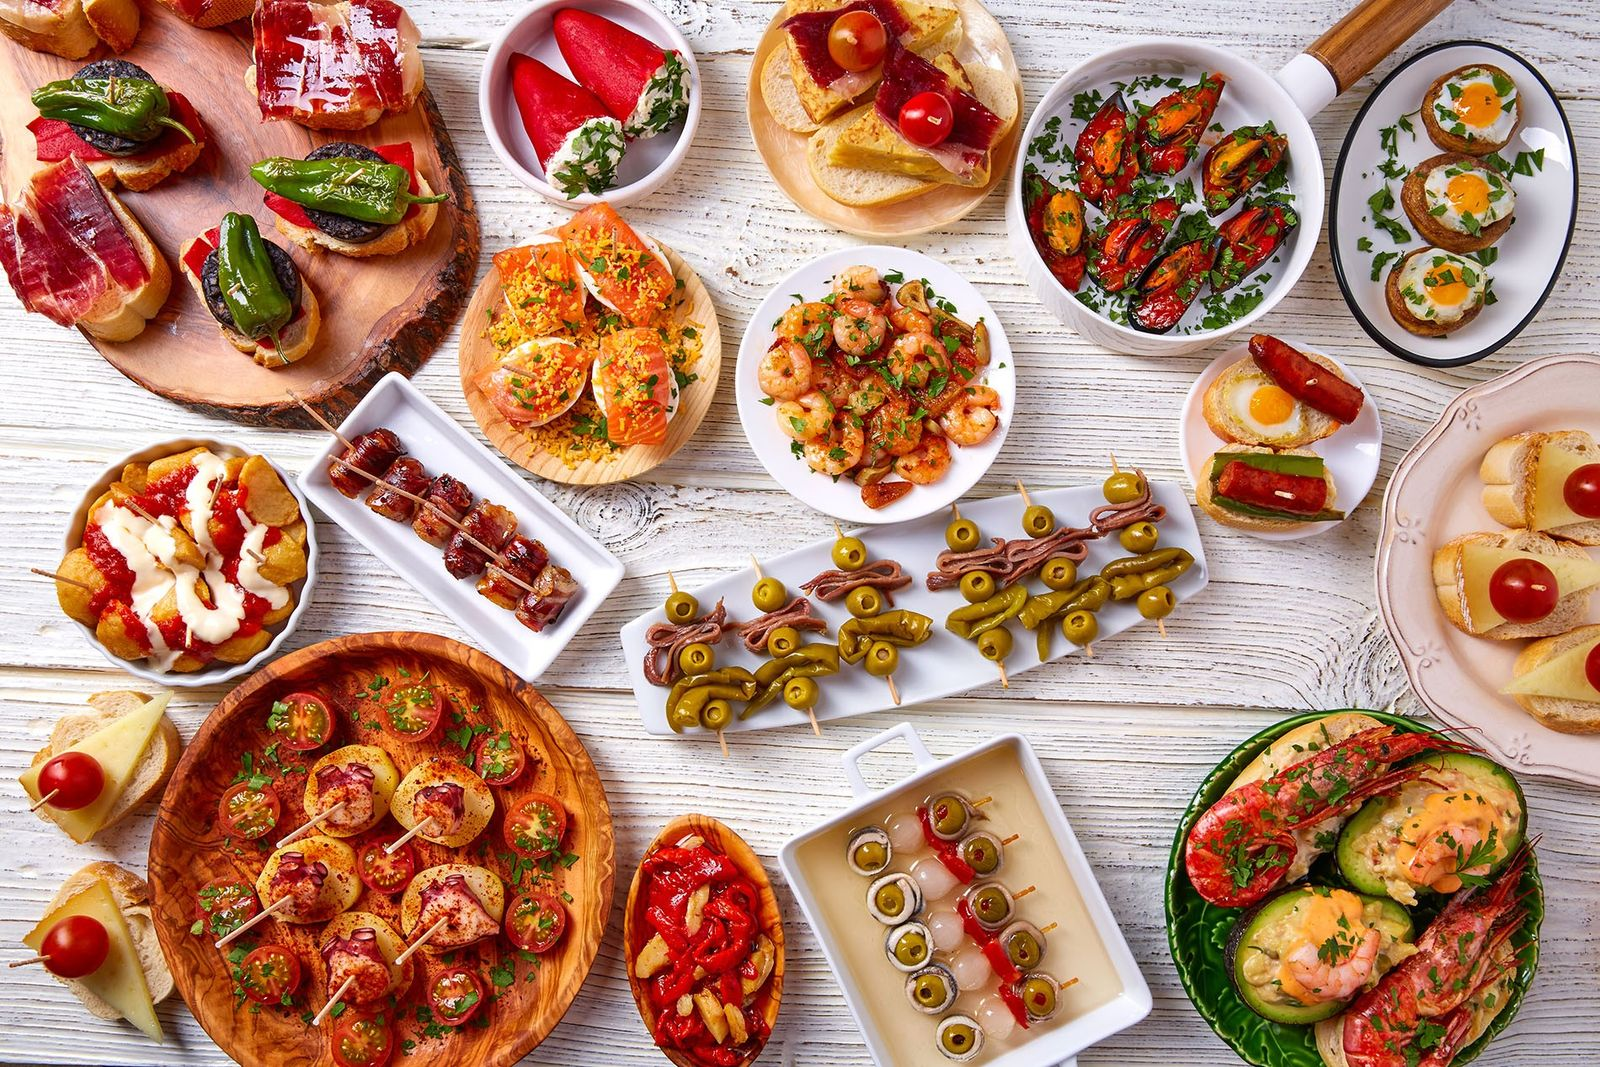 Travel Geeks online: deconstructing Spanish food — 19 May 2020